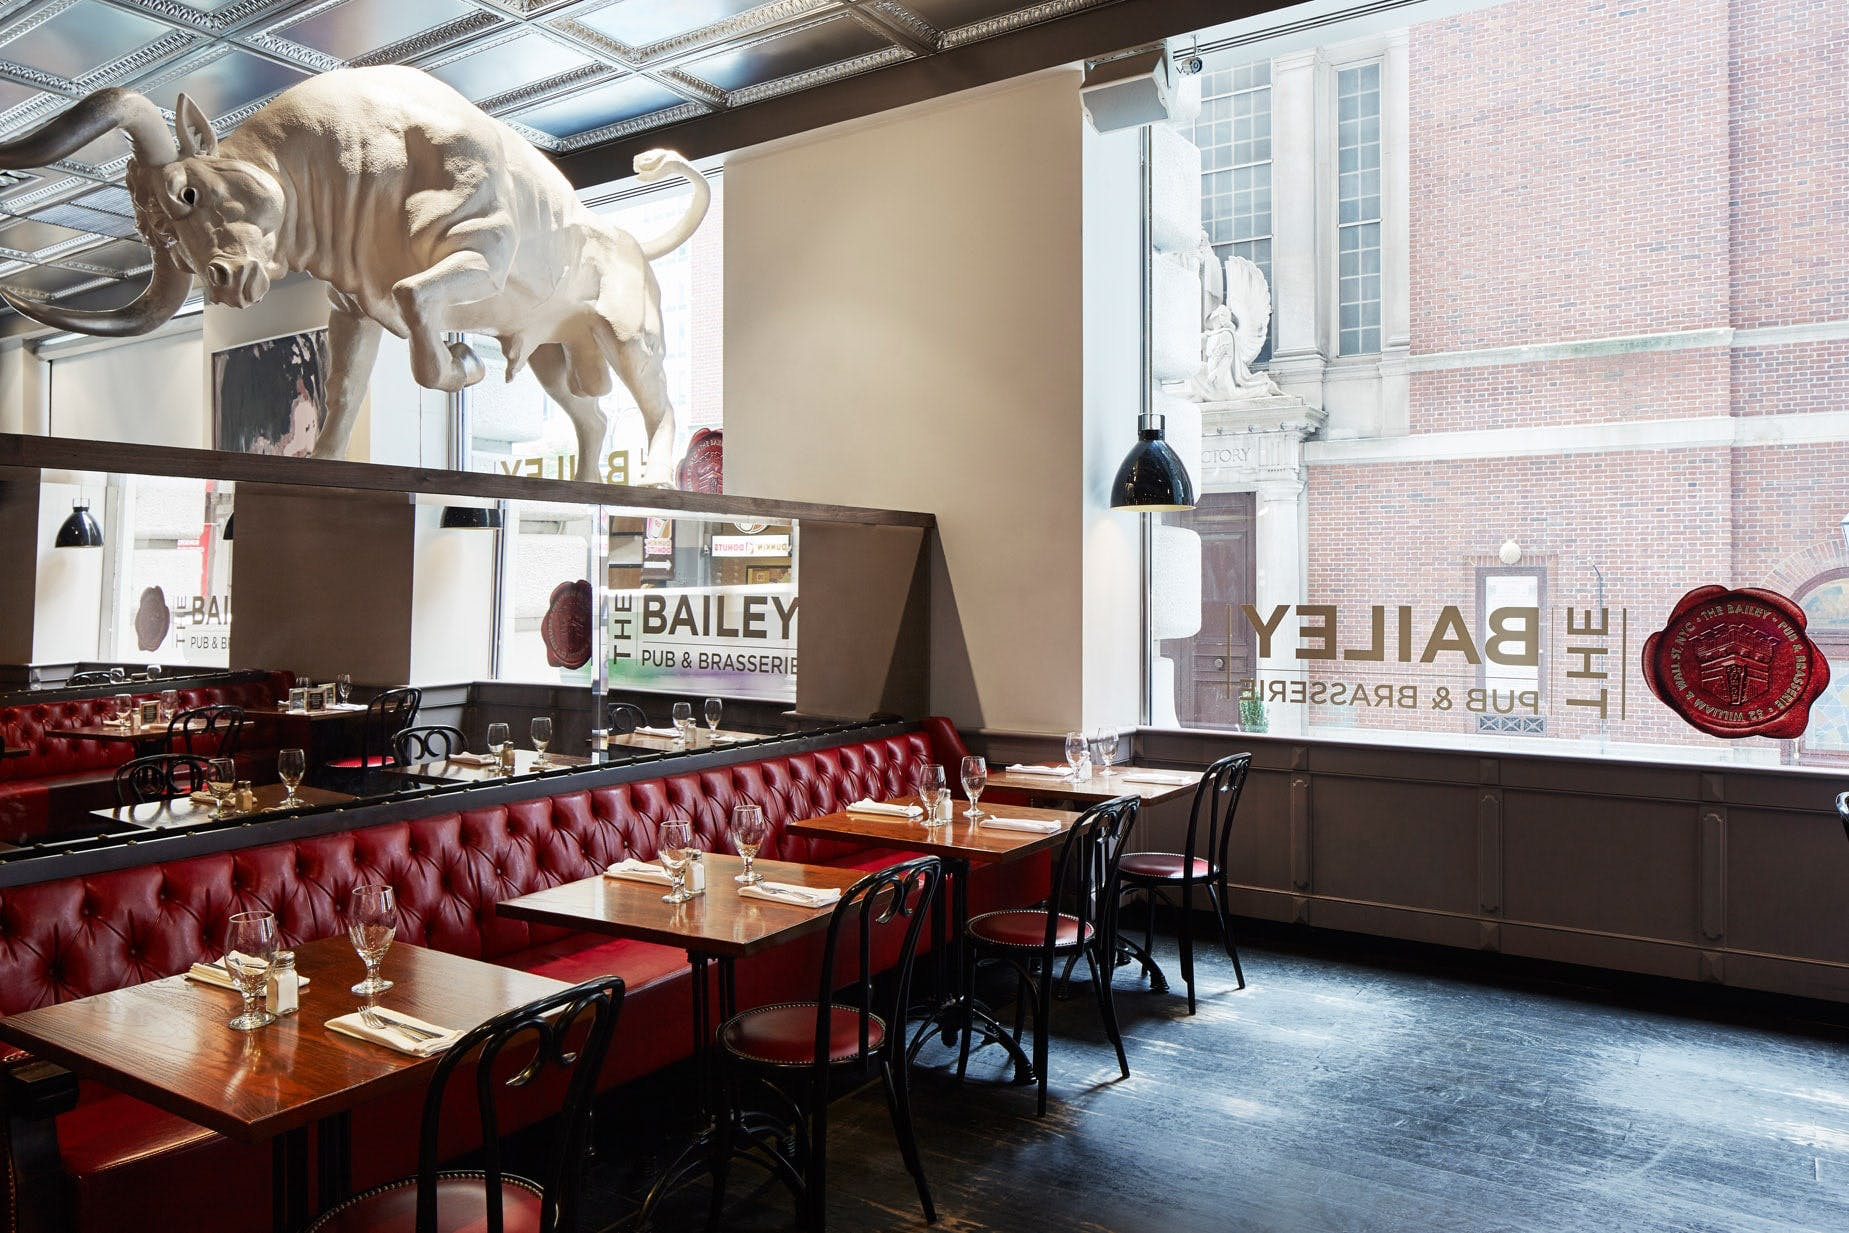 The Bailey Restaurant and Bar at Club Quarters Hotel, Wall Street